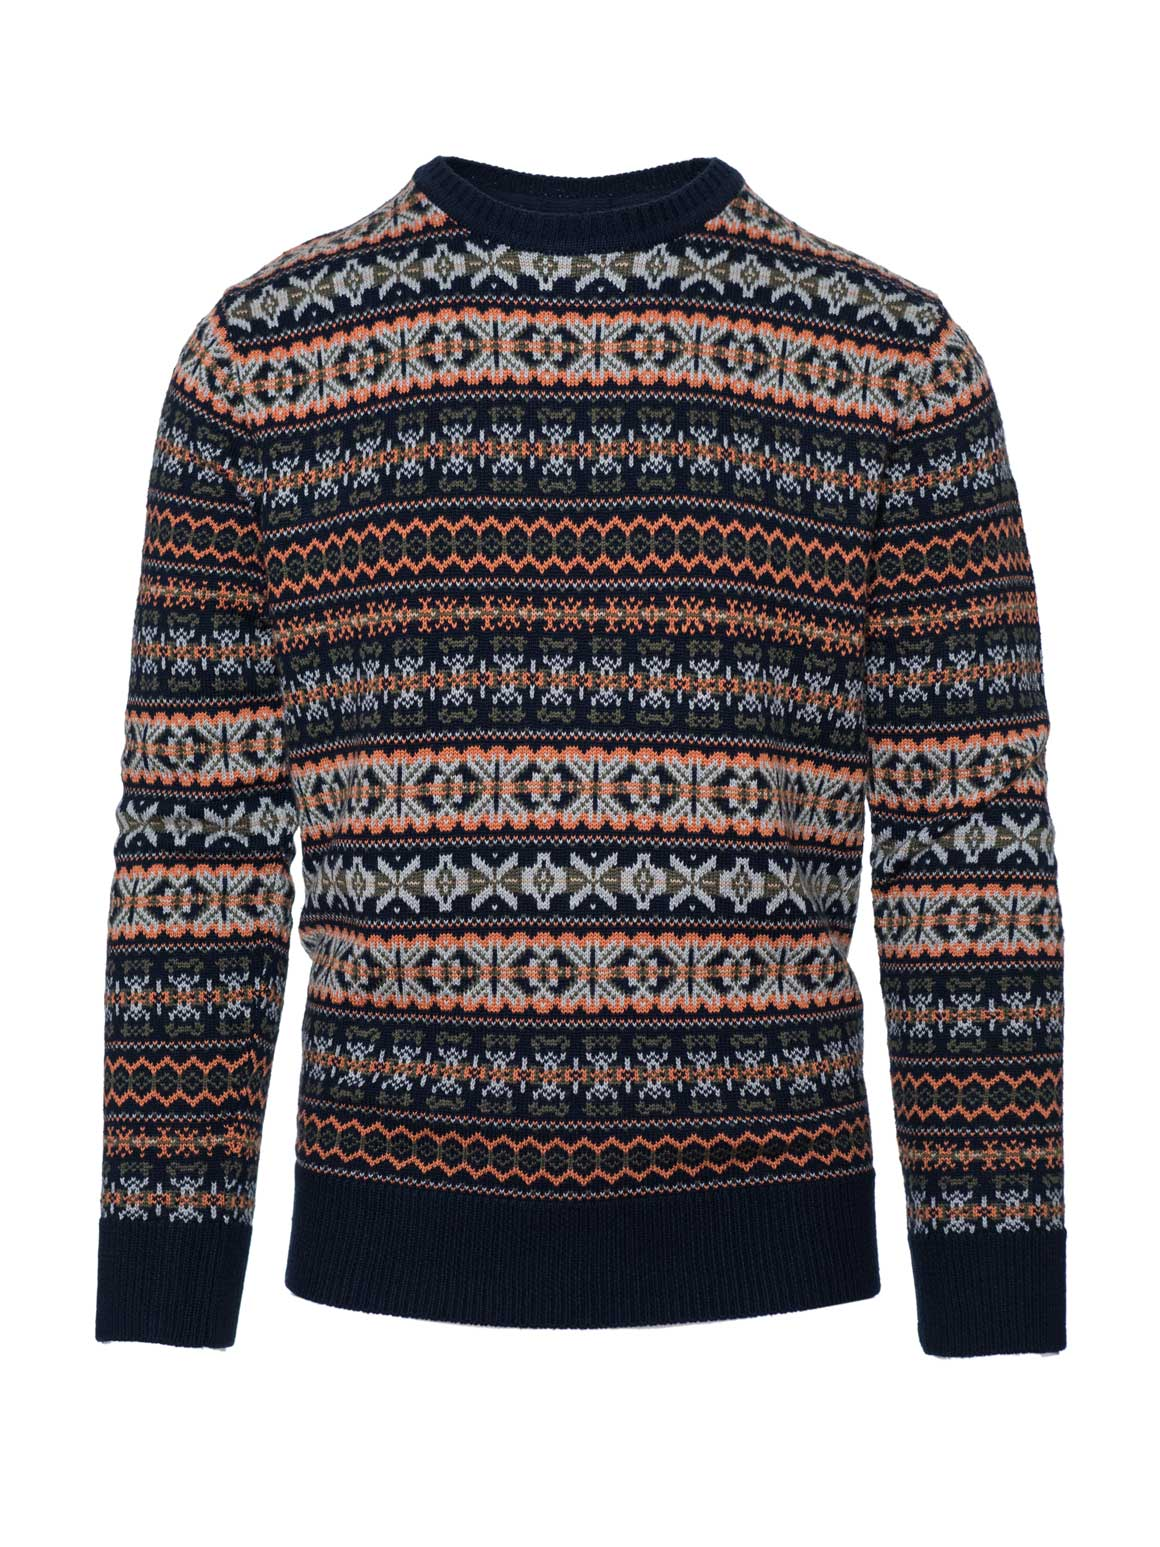 Crew Neck Sweater - Hazzard Multi